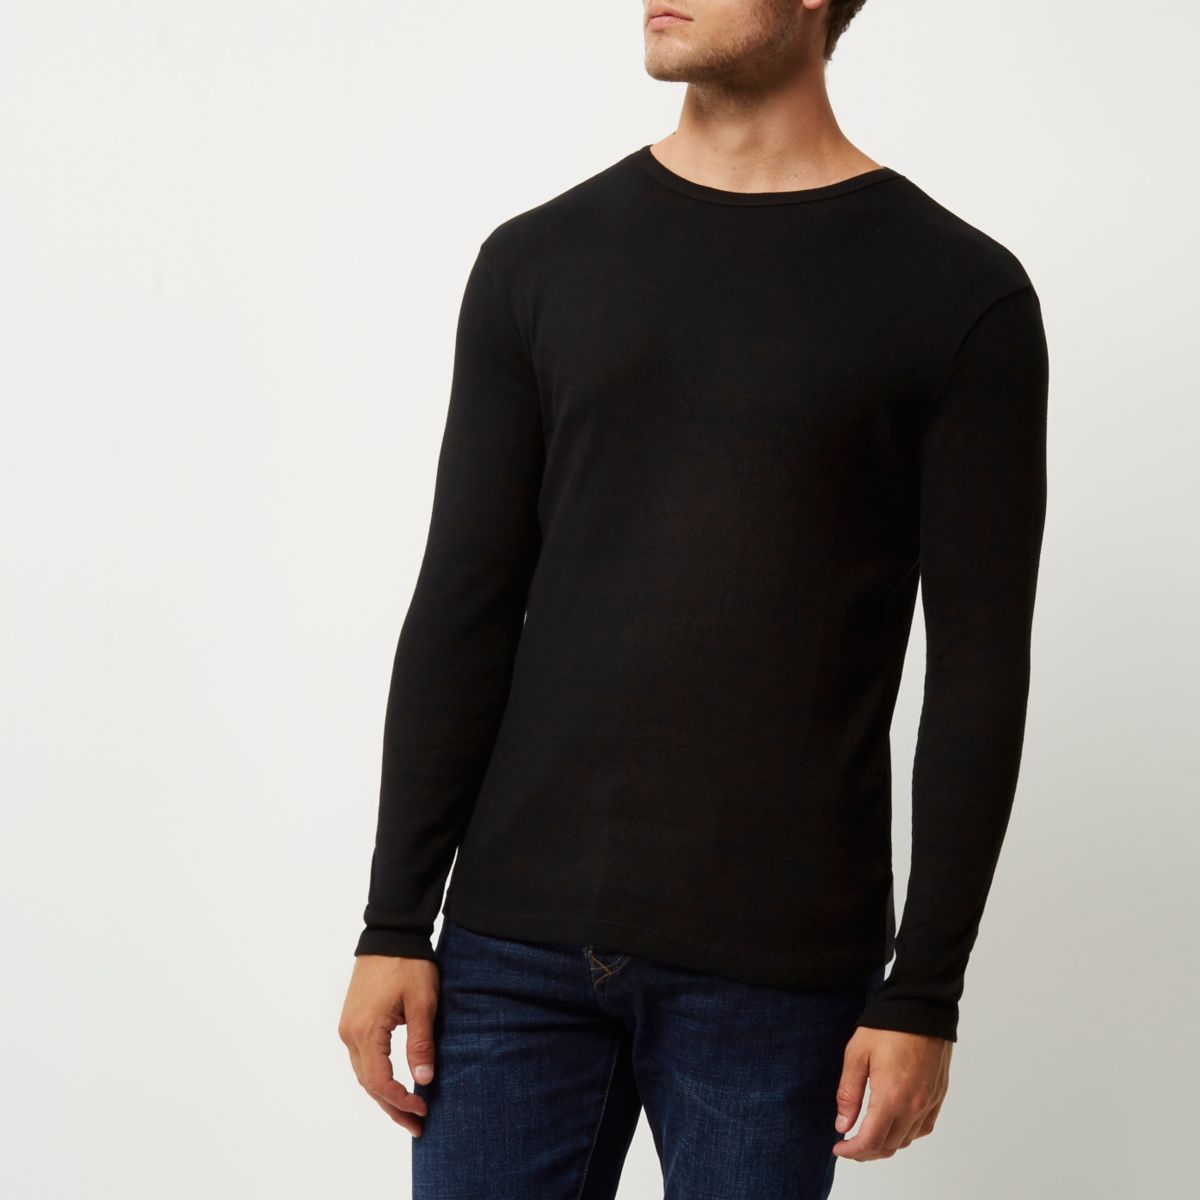 Find great deals on eBay for long black shirt. Shop with confidence.